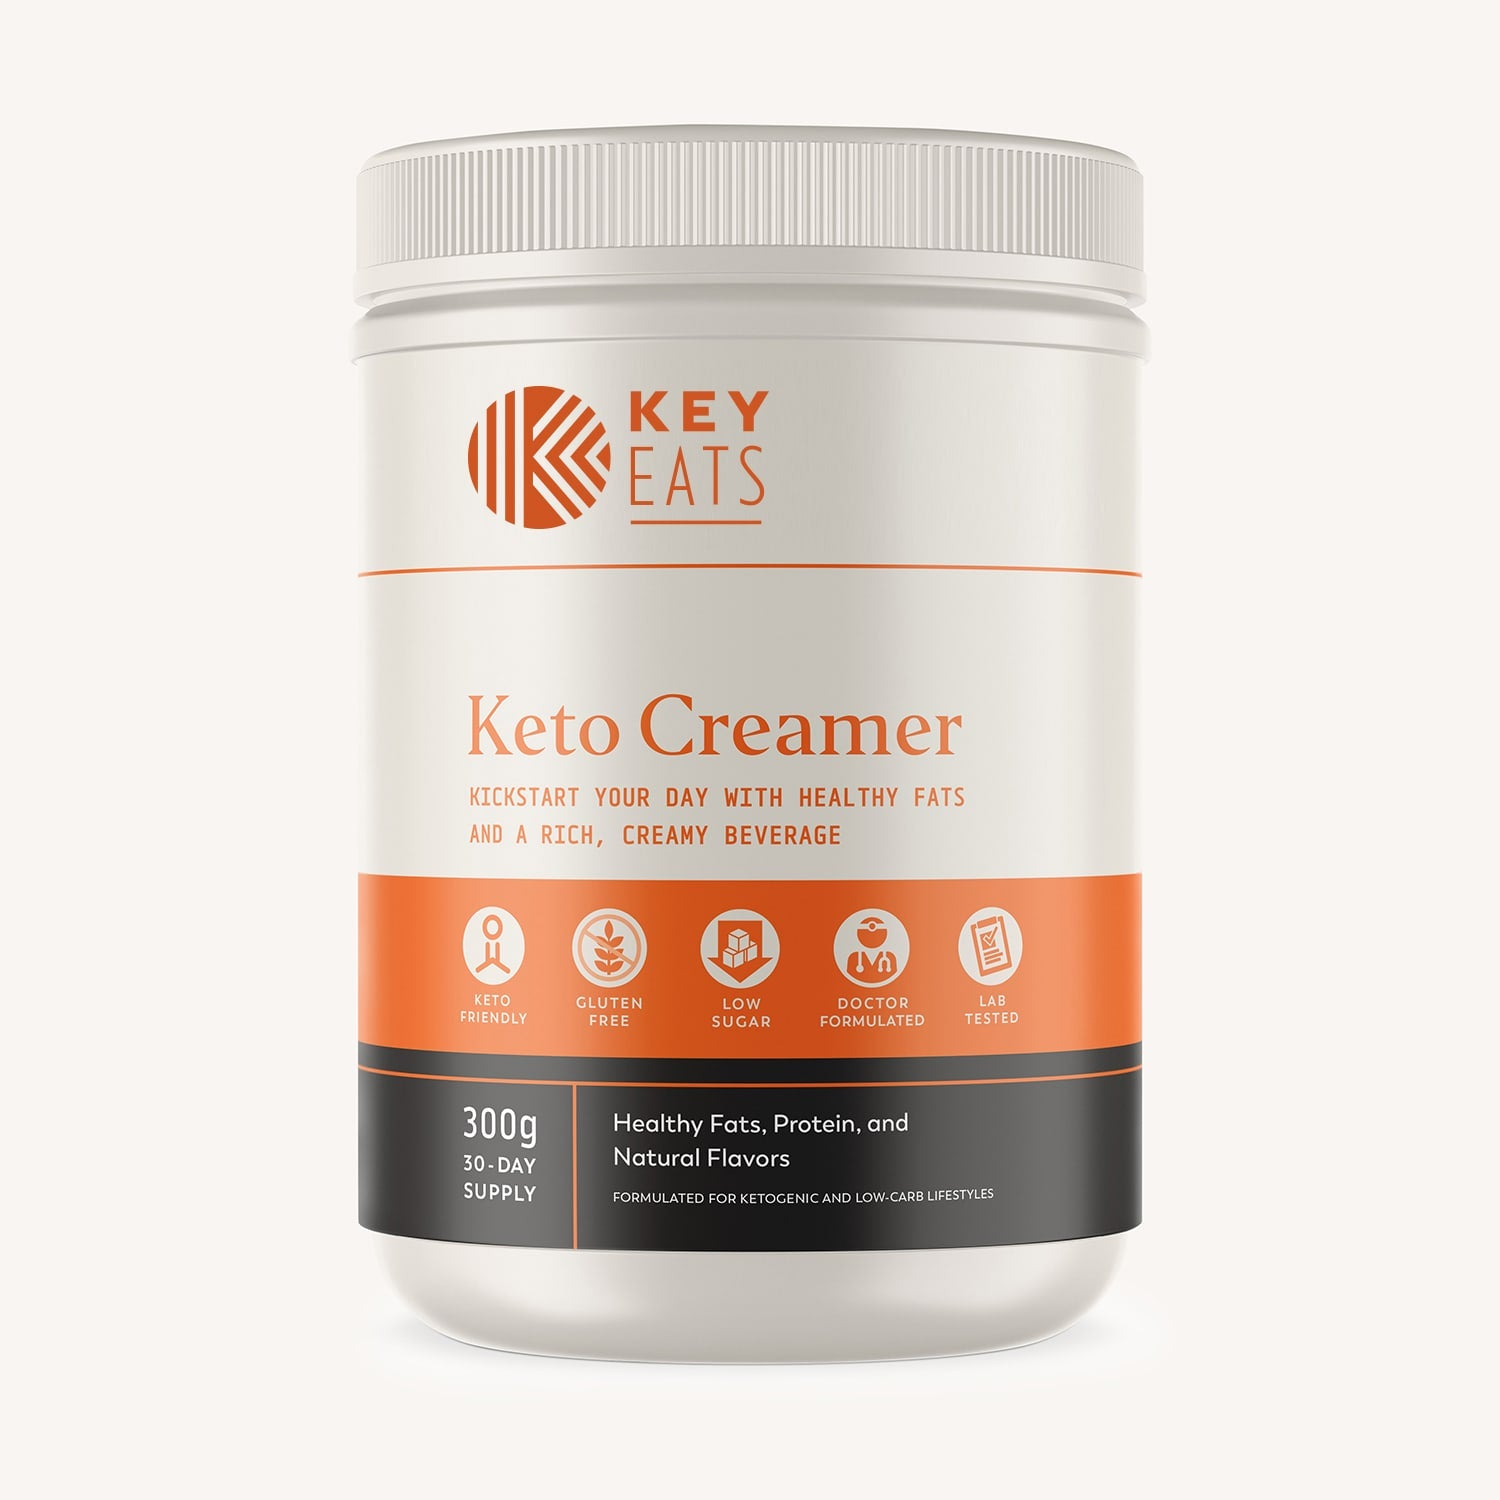 Keto Creamer by Key Eats